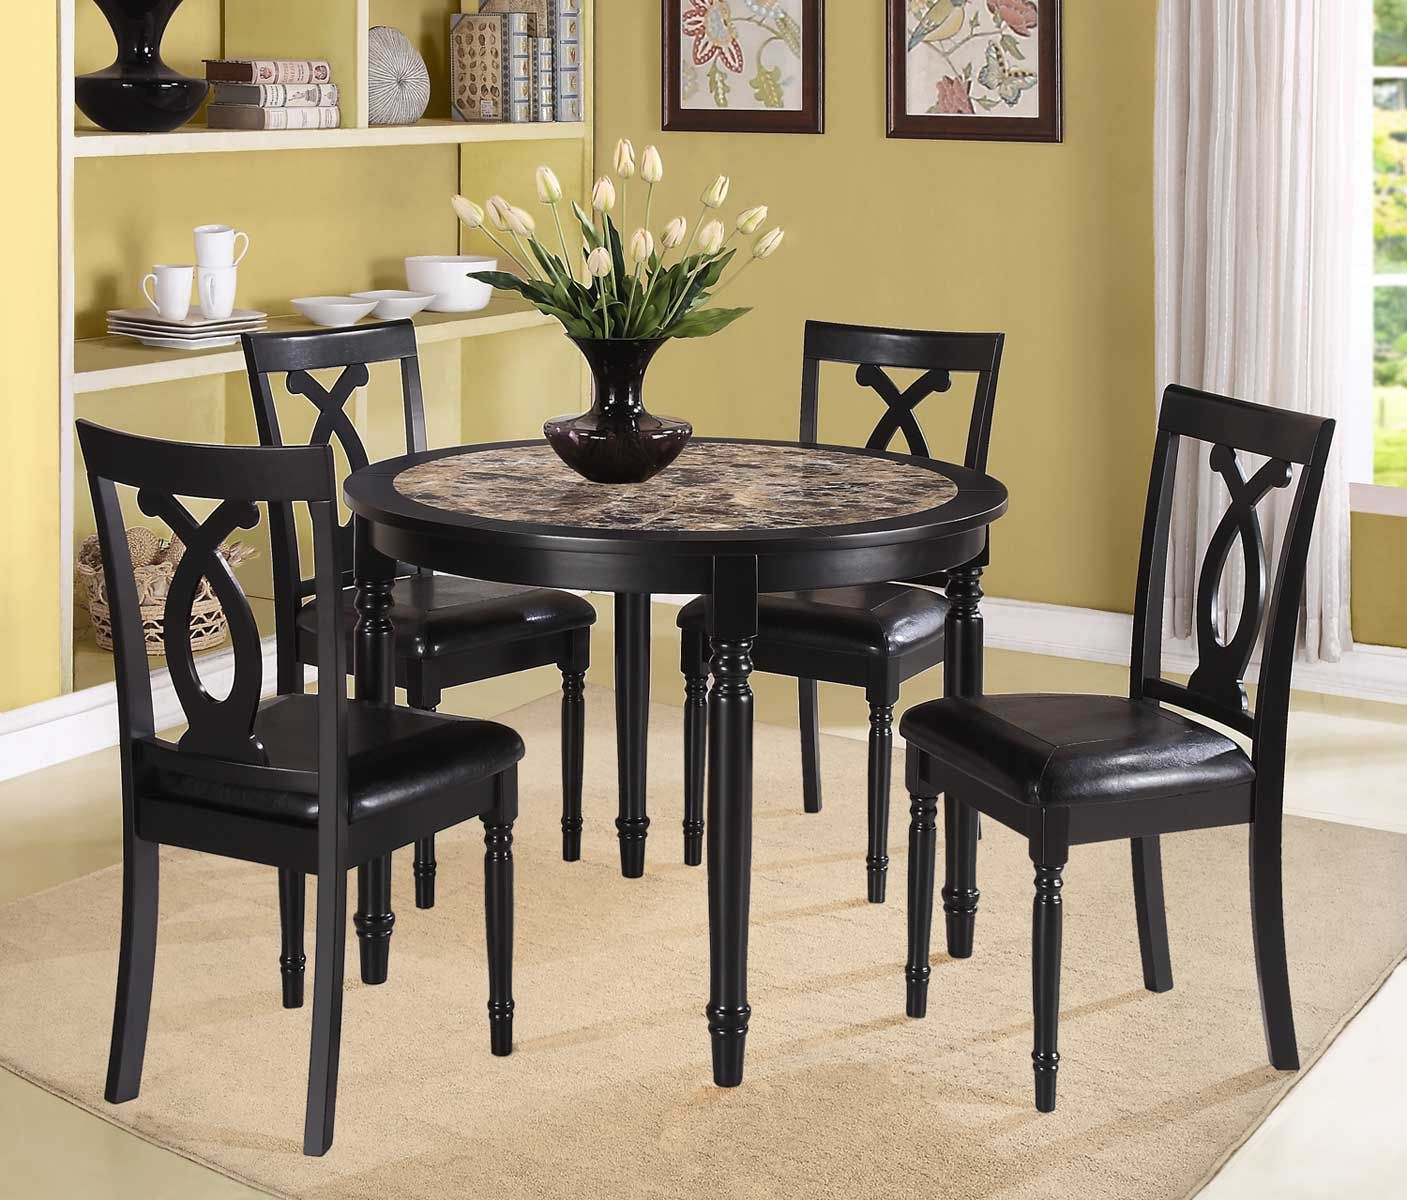 Dinette Set Dining Room Table Set Small Round Kitchen Table Round Dining Room